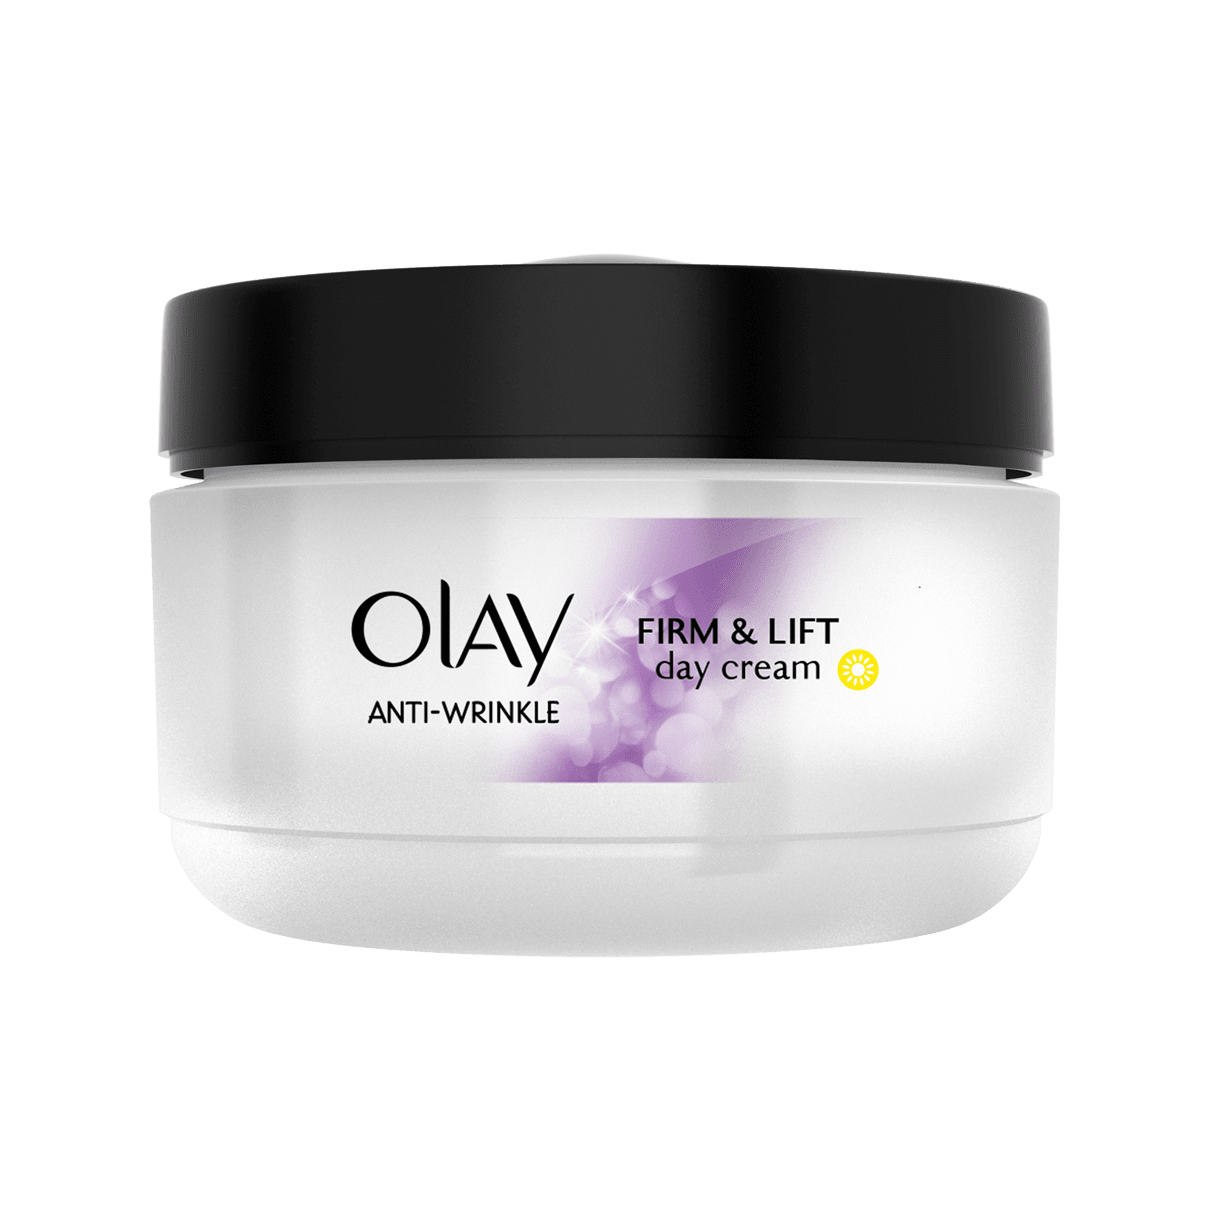 Anti-Wrinkle Firm & Lift Day Cream